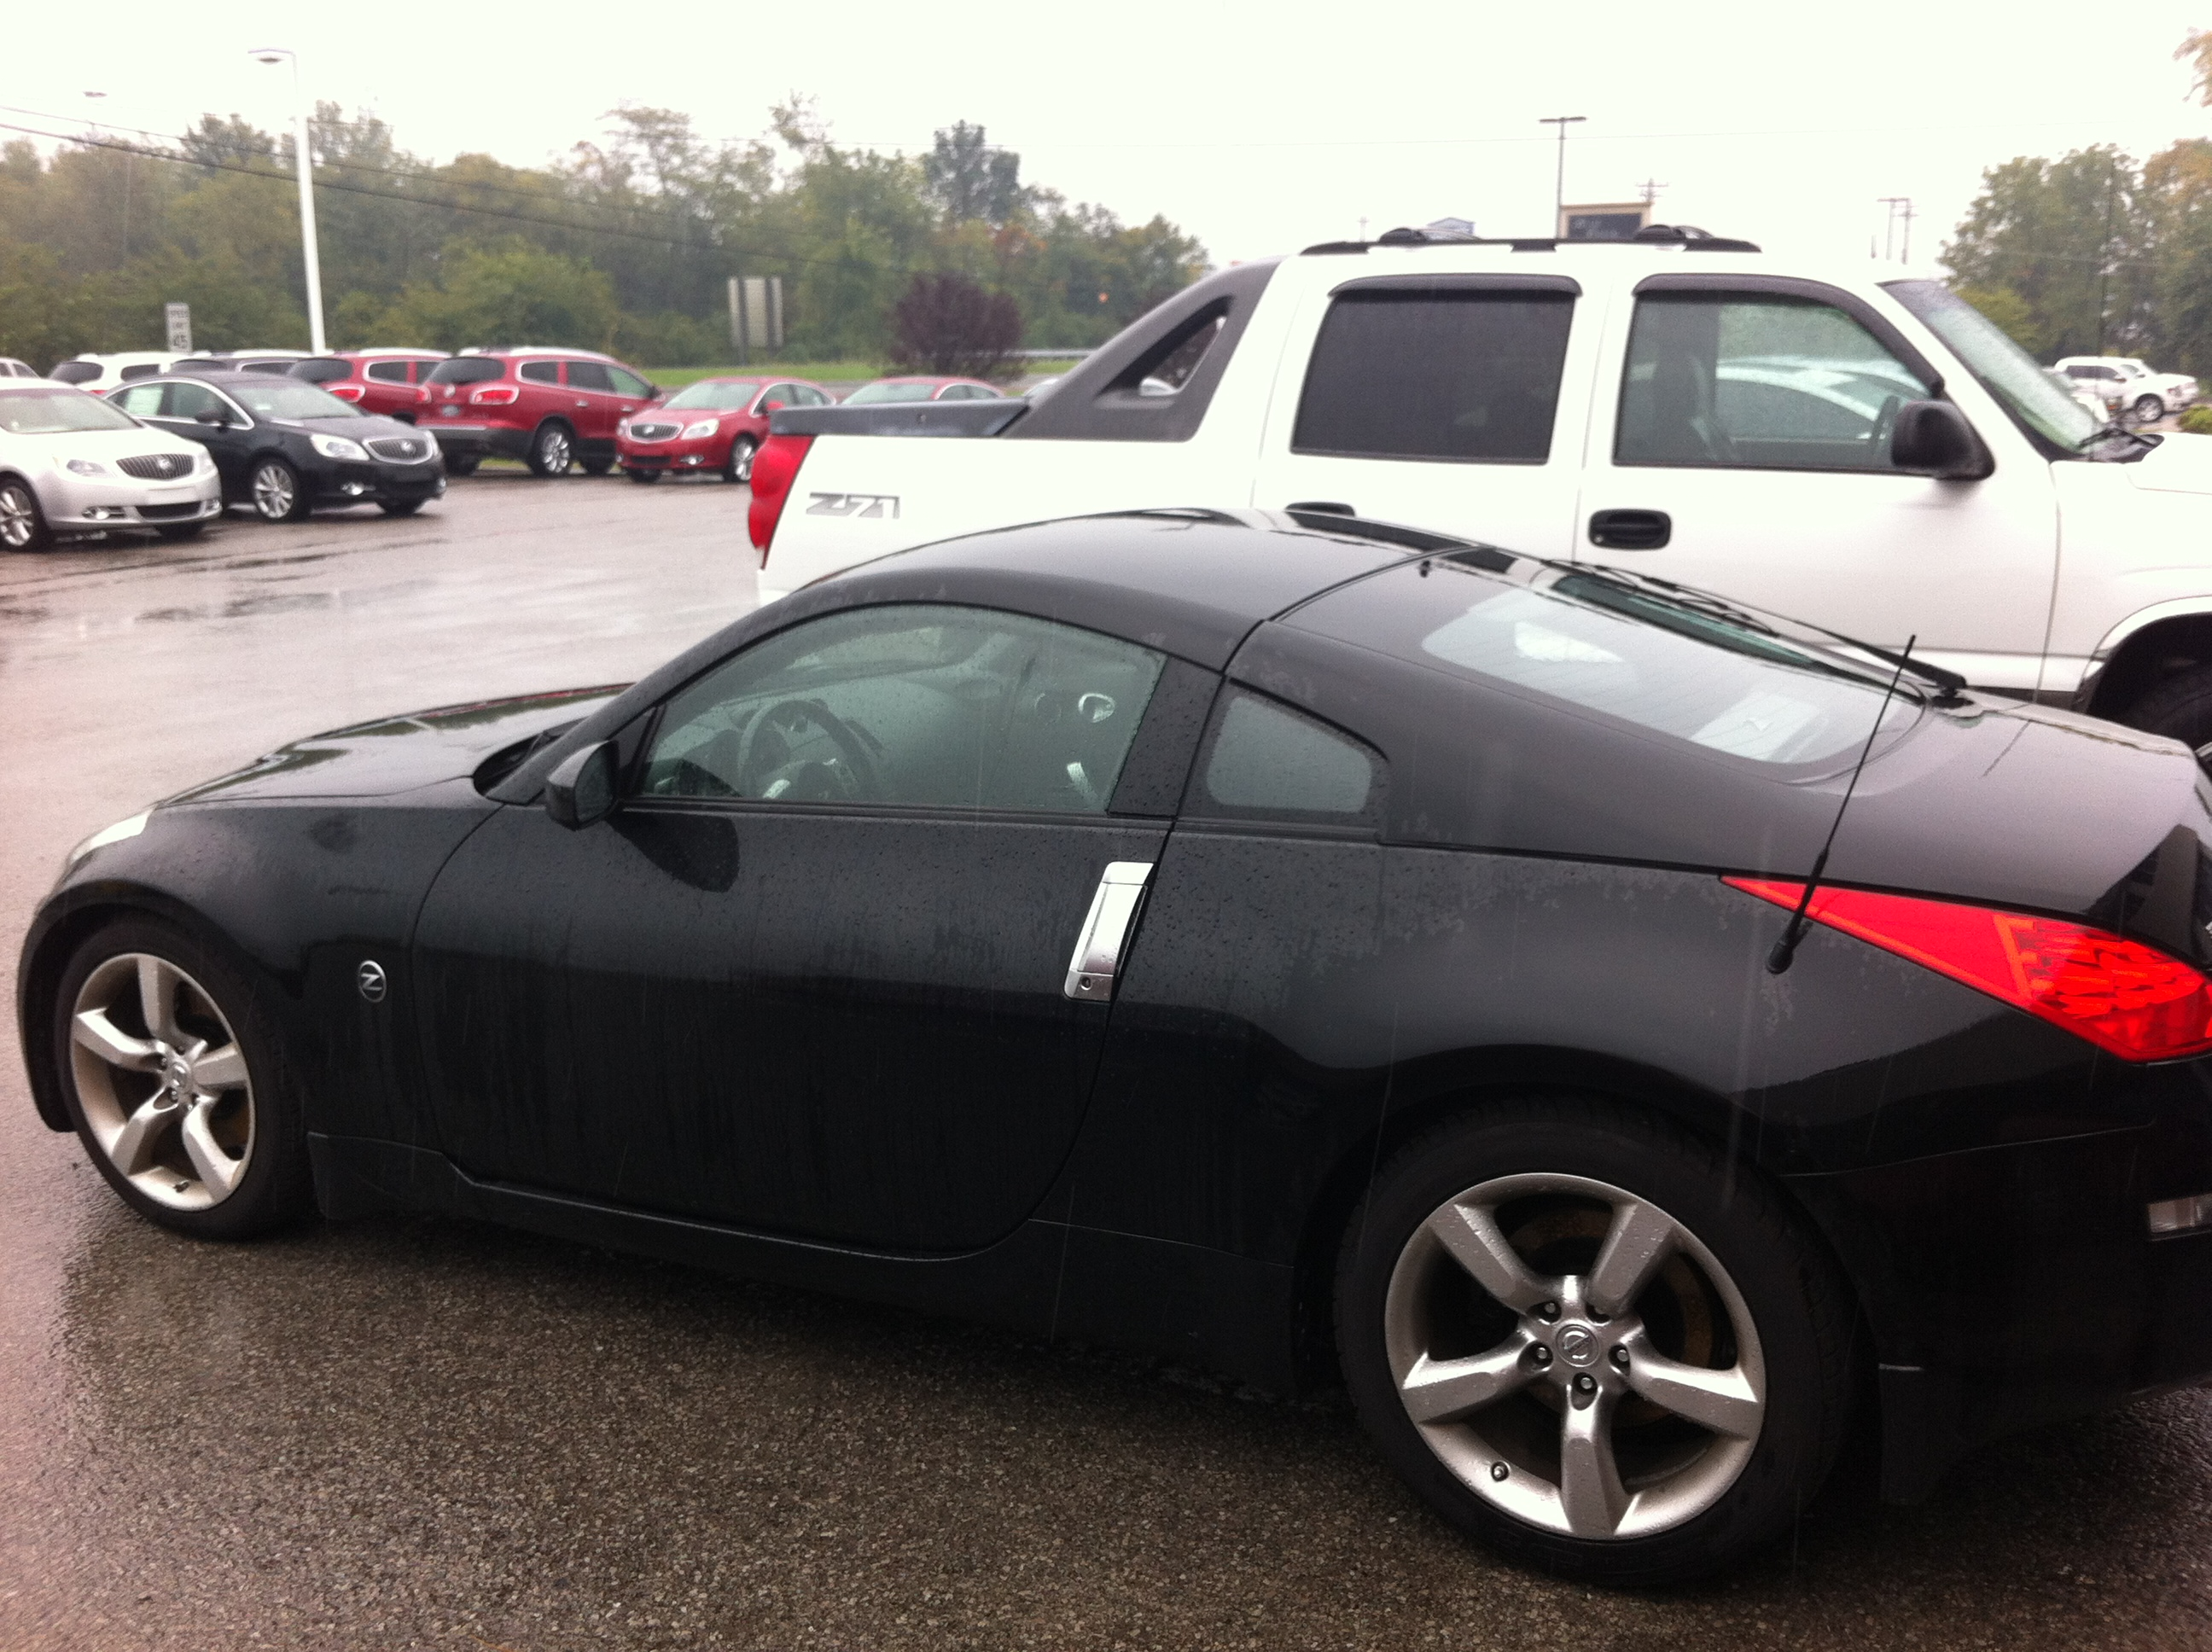 2008 Nissan 250z for sale. $0.00. What you need to know before you buy.